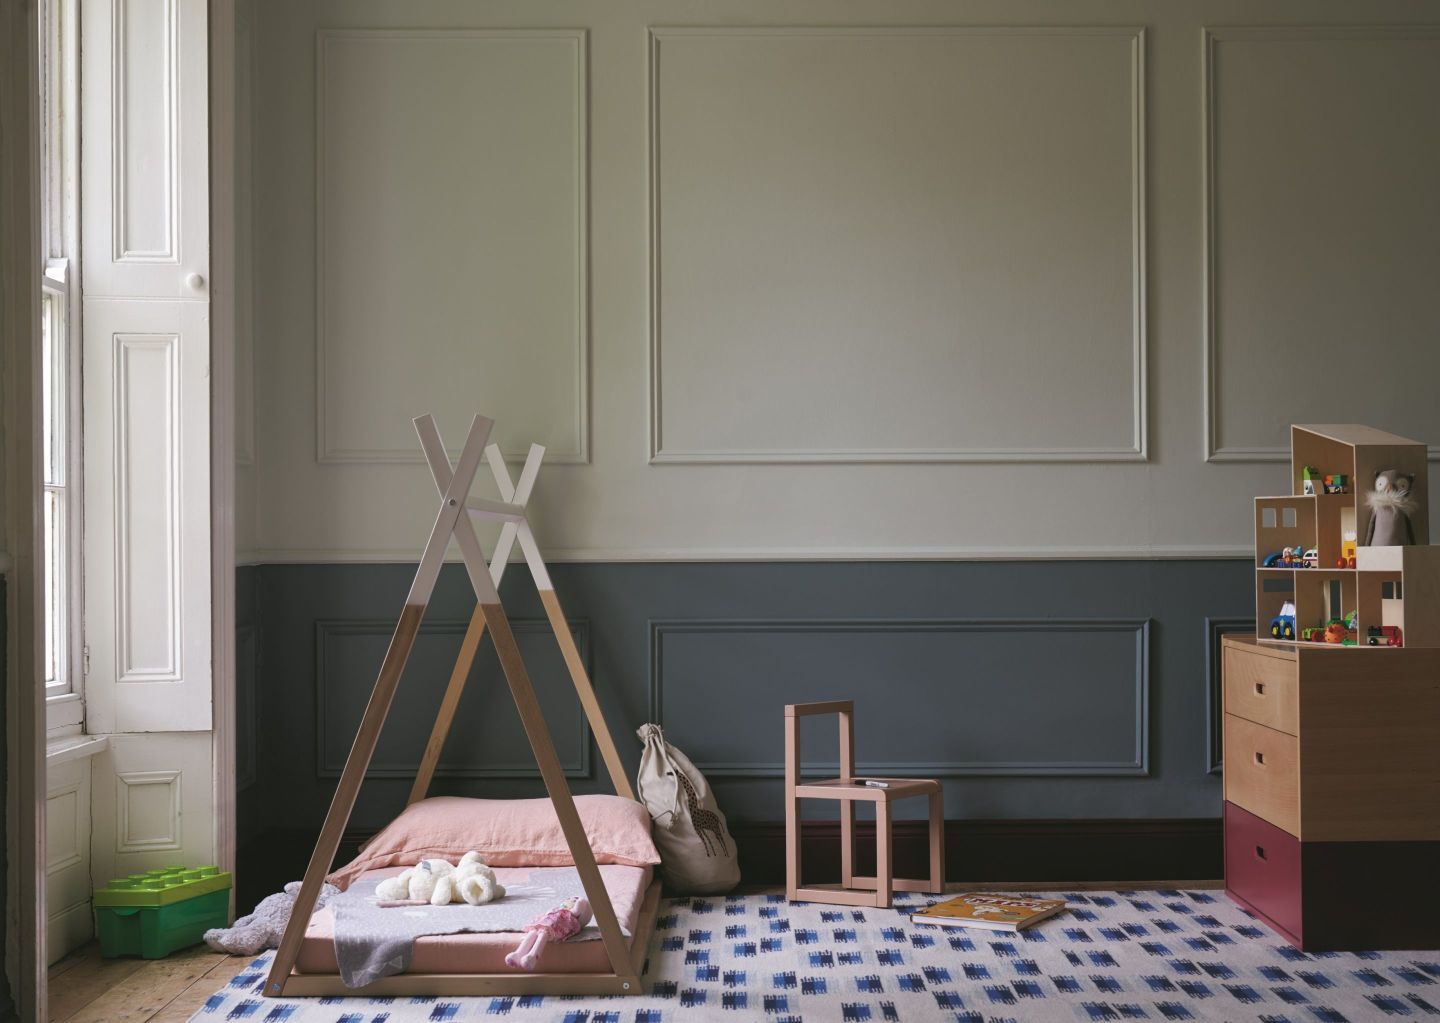 FarrowBall_3251413_FarrowBallNewColours2018.jpg-1440x1023 Paint Inspiration: 20 Colorful Rooms We Love